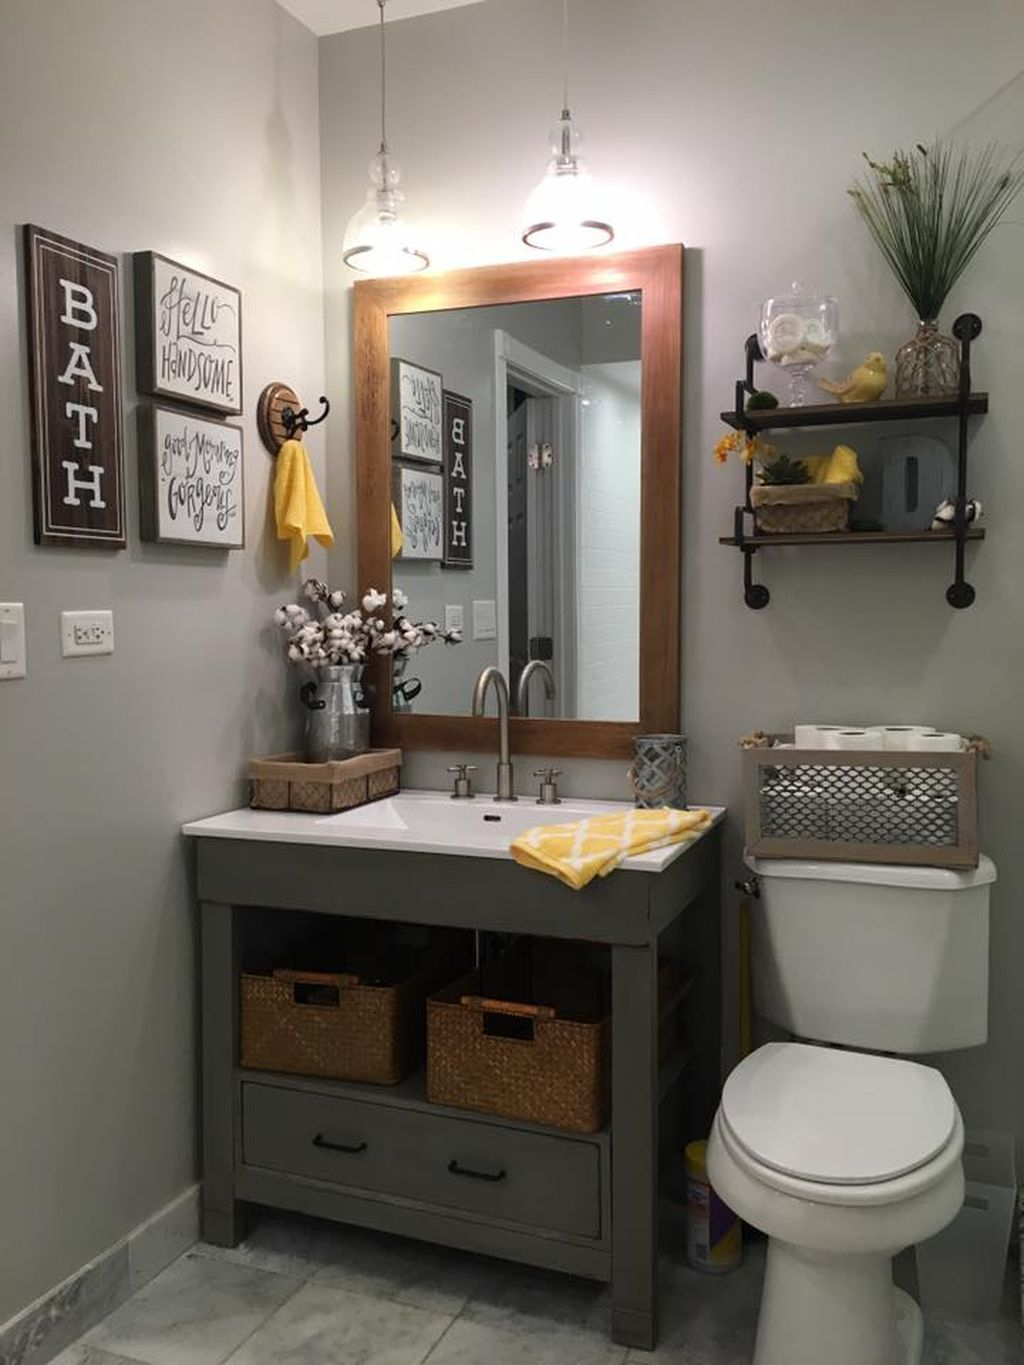 Inspiring Rustic Bathroom Vanity Remodel Ideas 53